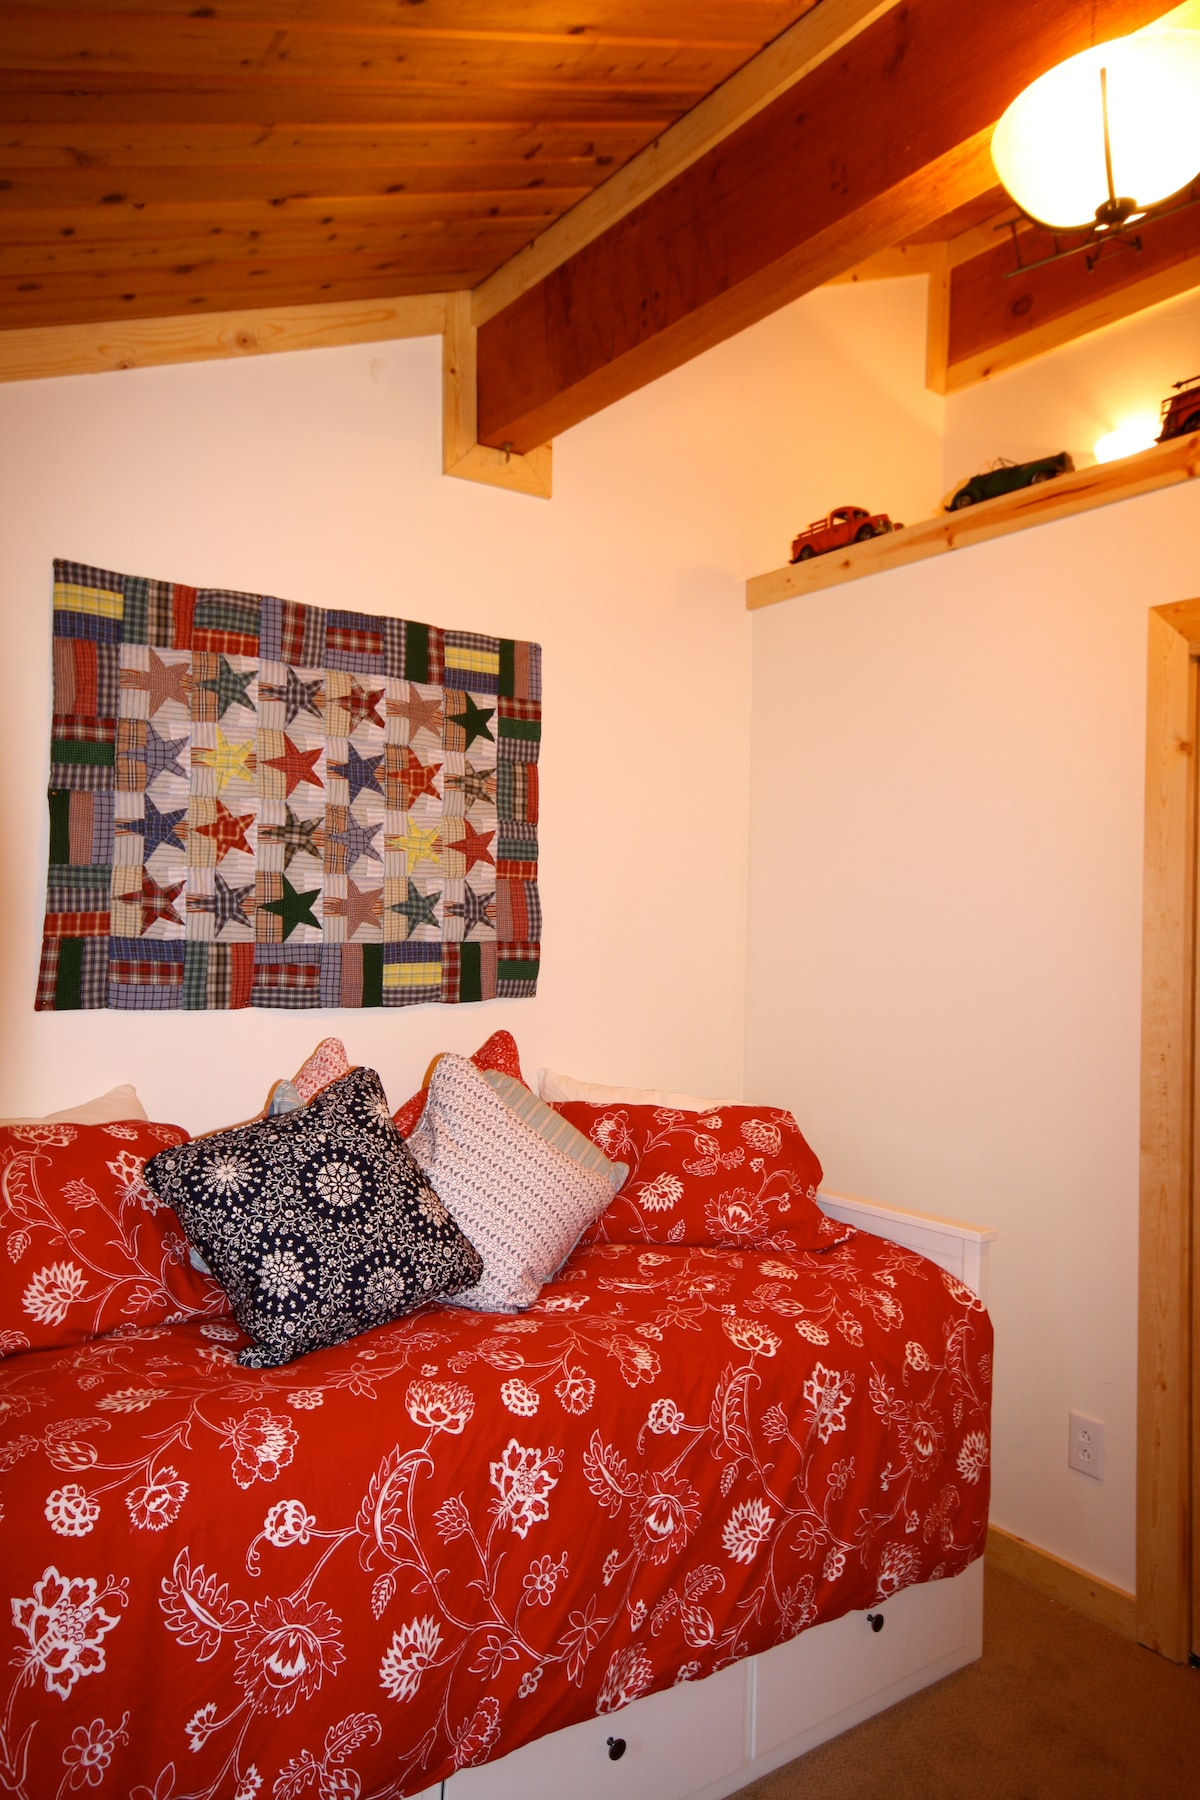 Third beroom with trundle bed for 2 persons.